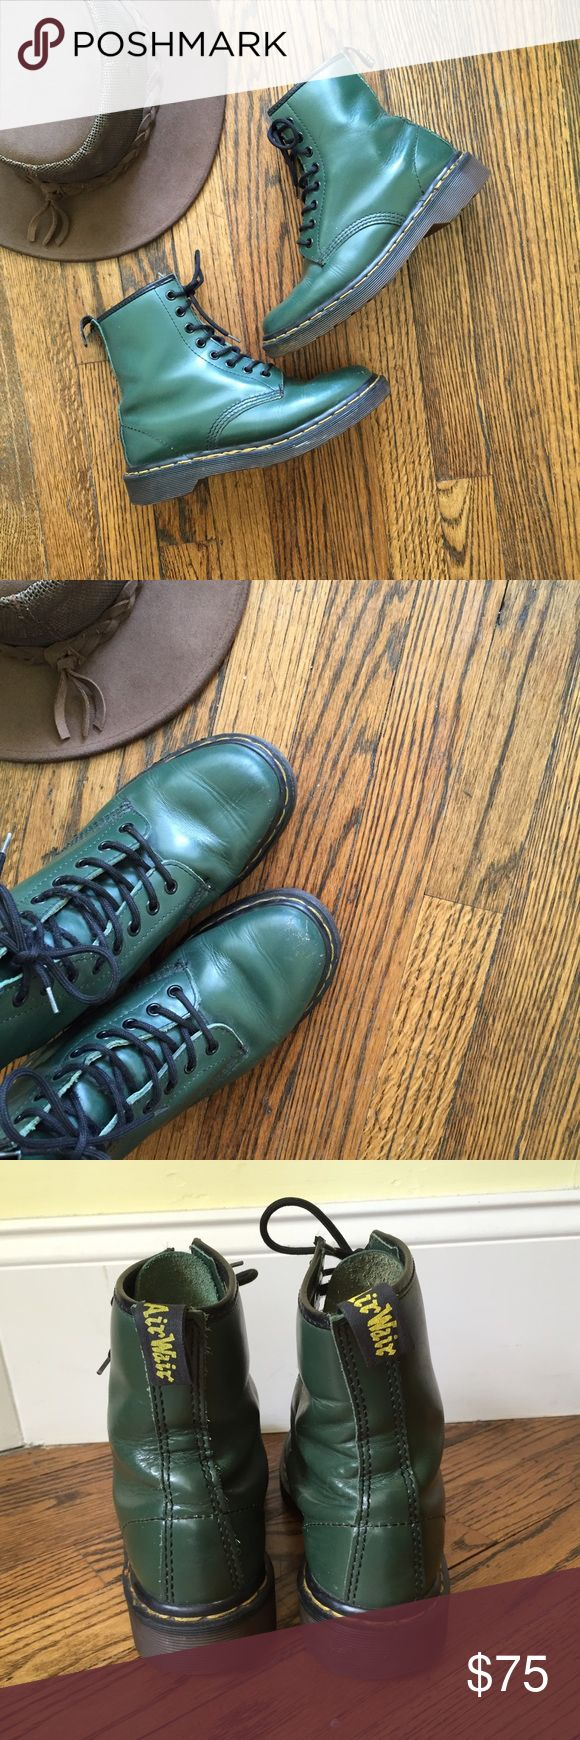 Made in England Dr Martens These boots are so amazing. A must have this fall/winter. The original all leather 1460 Dr Martens boots in smooth green. Size 5. In good condition. Made in England. Dr. Martens Shoes